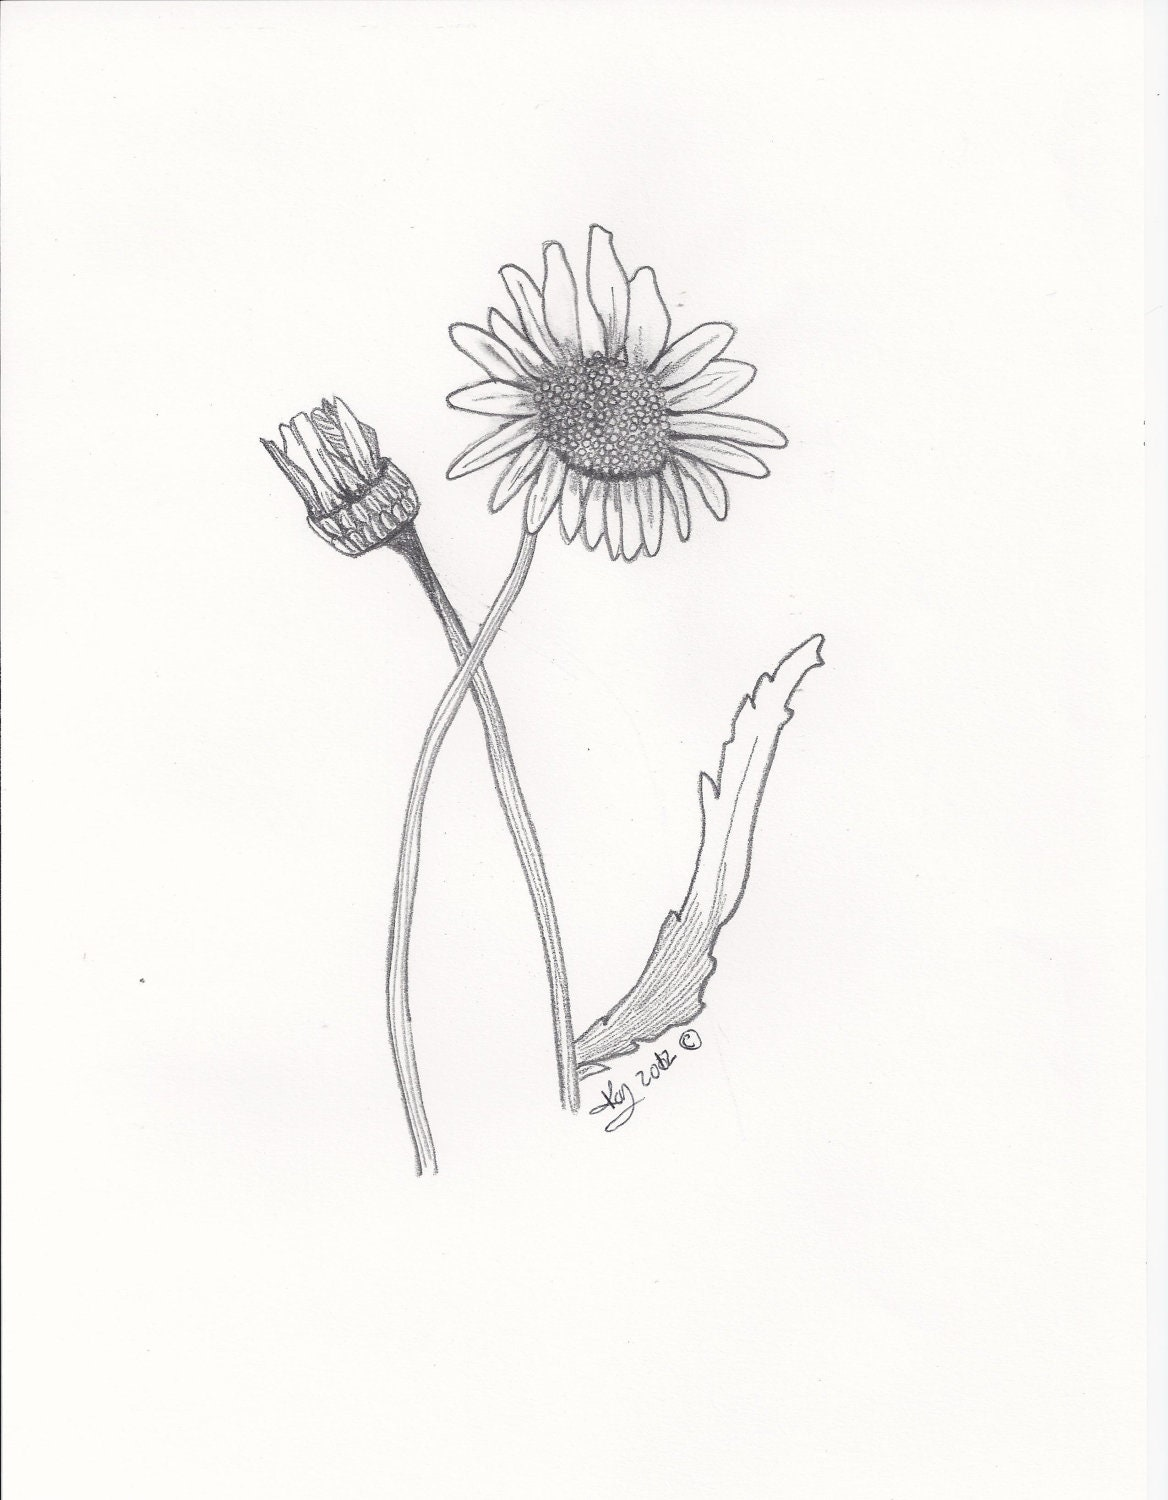 Daisy Flower Print in black and white 5x7 Original Artwork by Reflections of Kayla